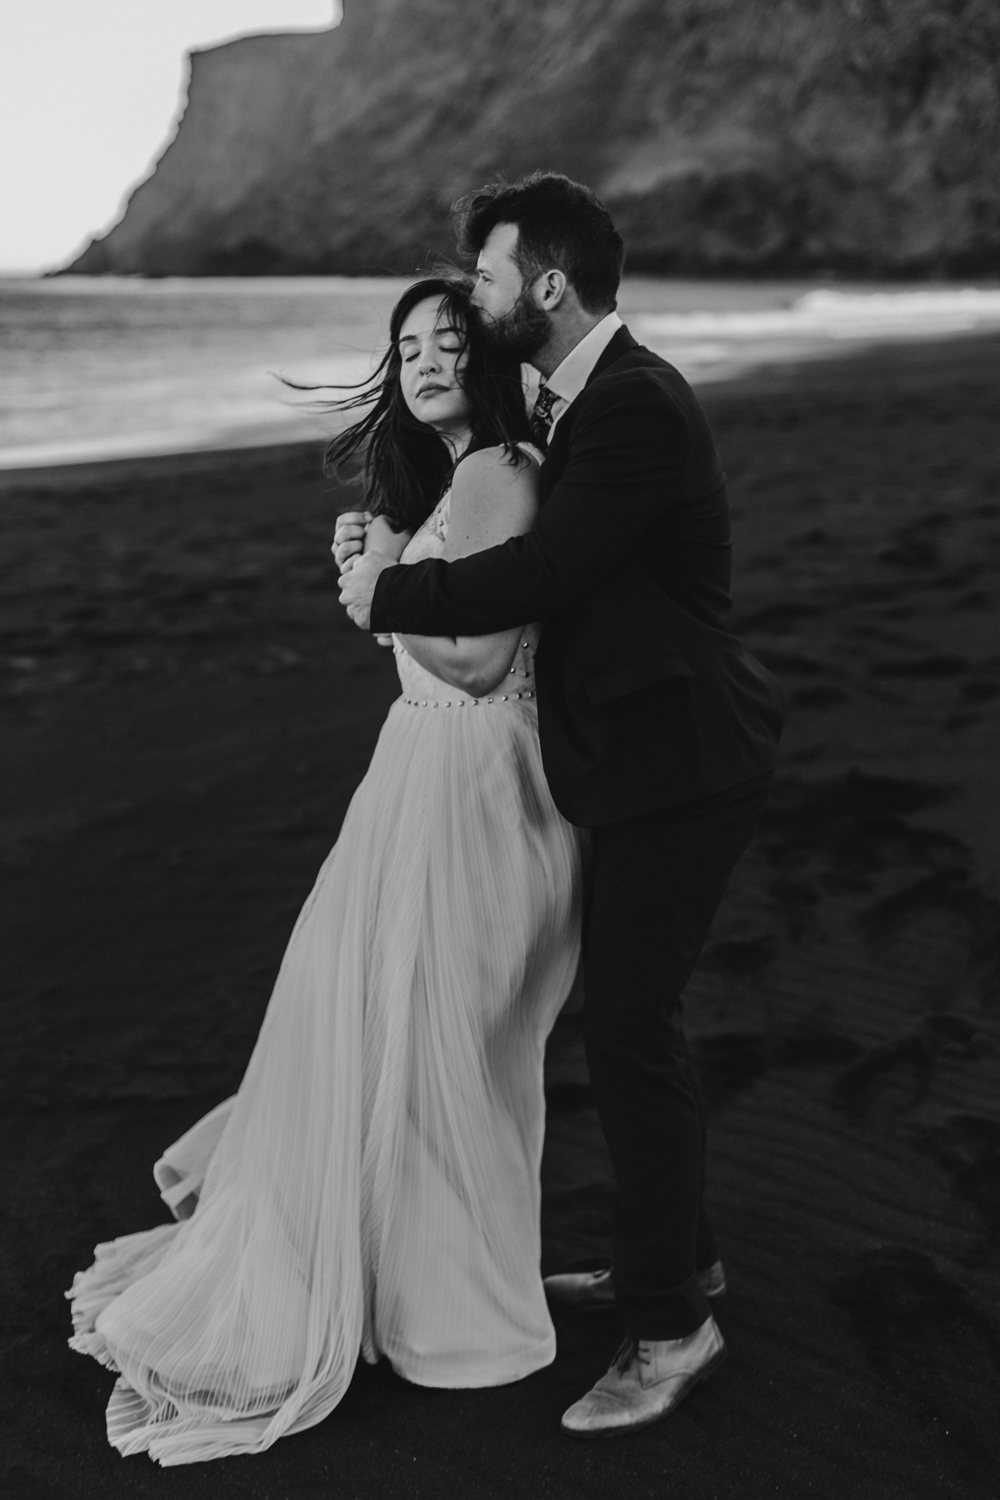 anna szczekutowicz iceland wedding photogapher elopement photographer-111.jpg